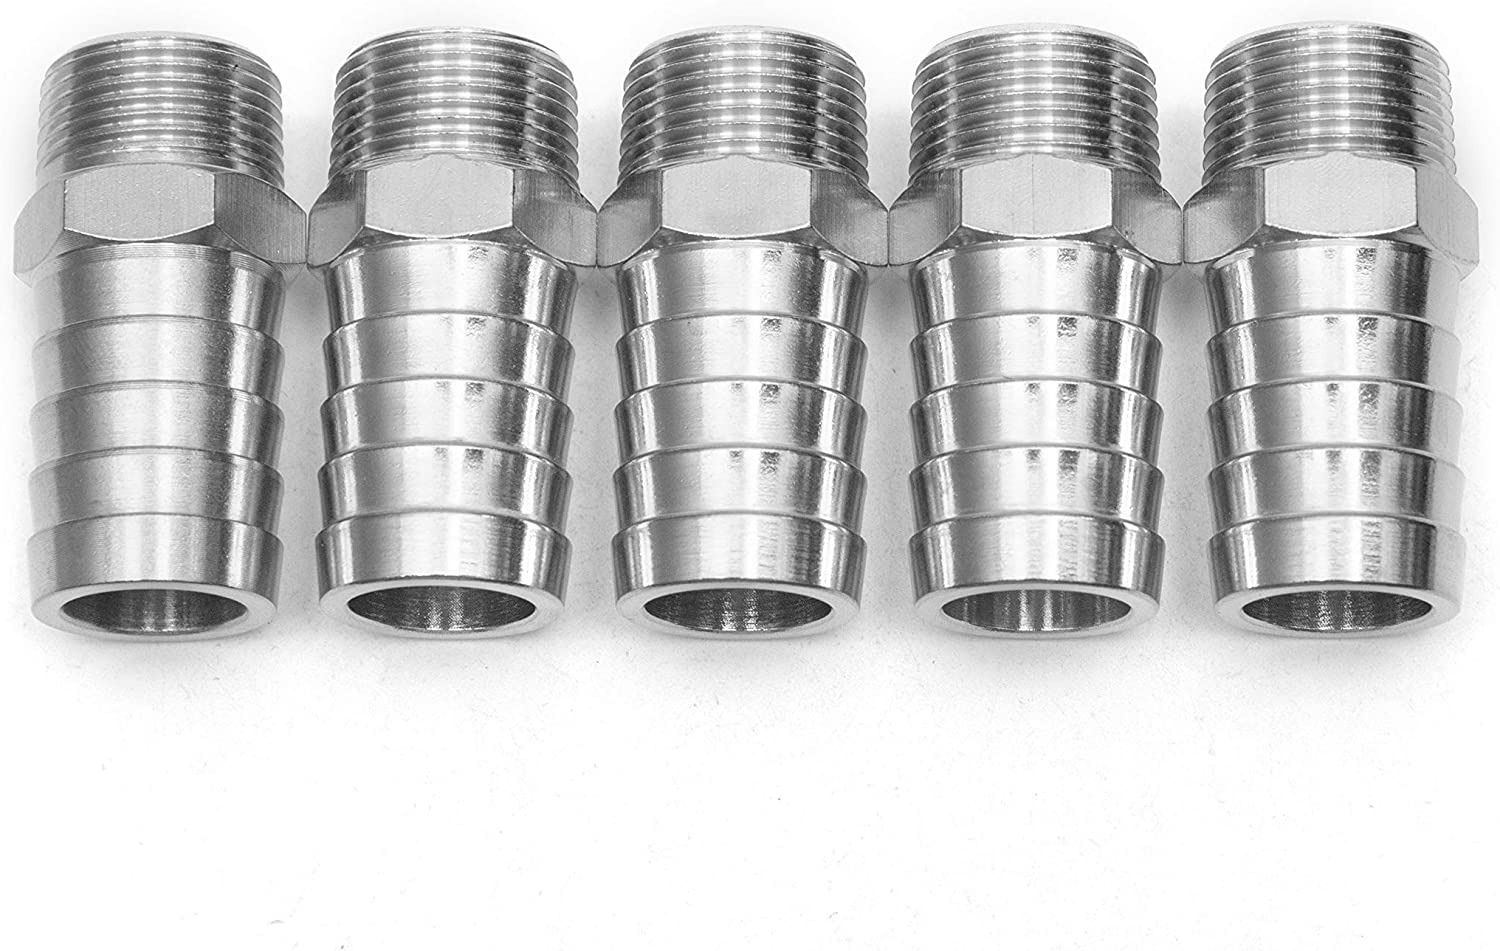 Pack of 5 LTWFITTING Bar Production Stainless Steel 316 Barb Fitting Coupler//Connector 1 Hose ID x 3//4 Male NPT Air Fuel Water